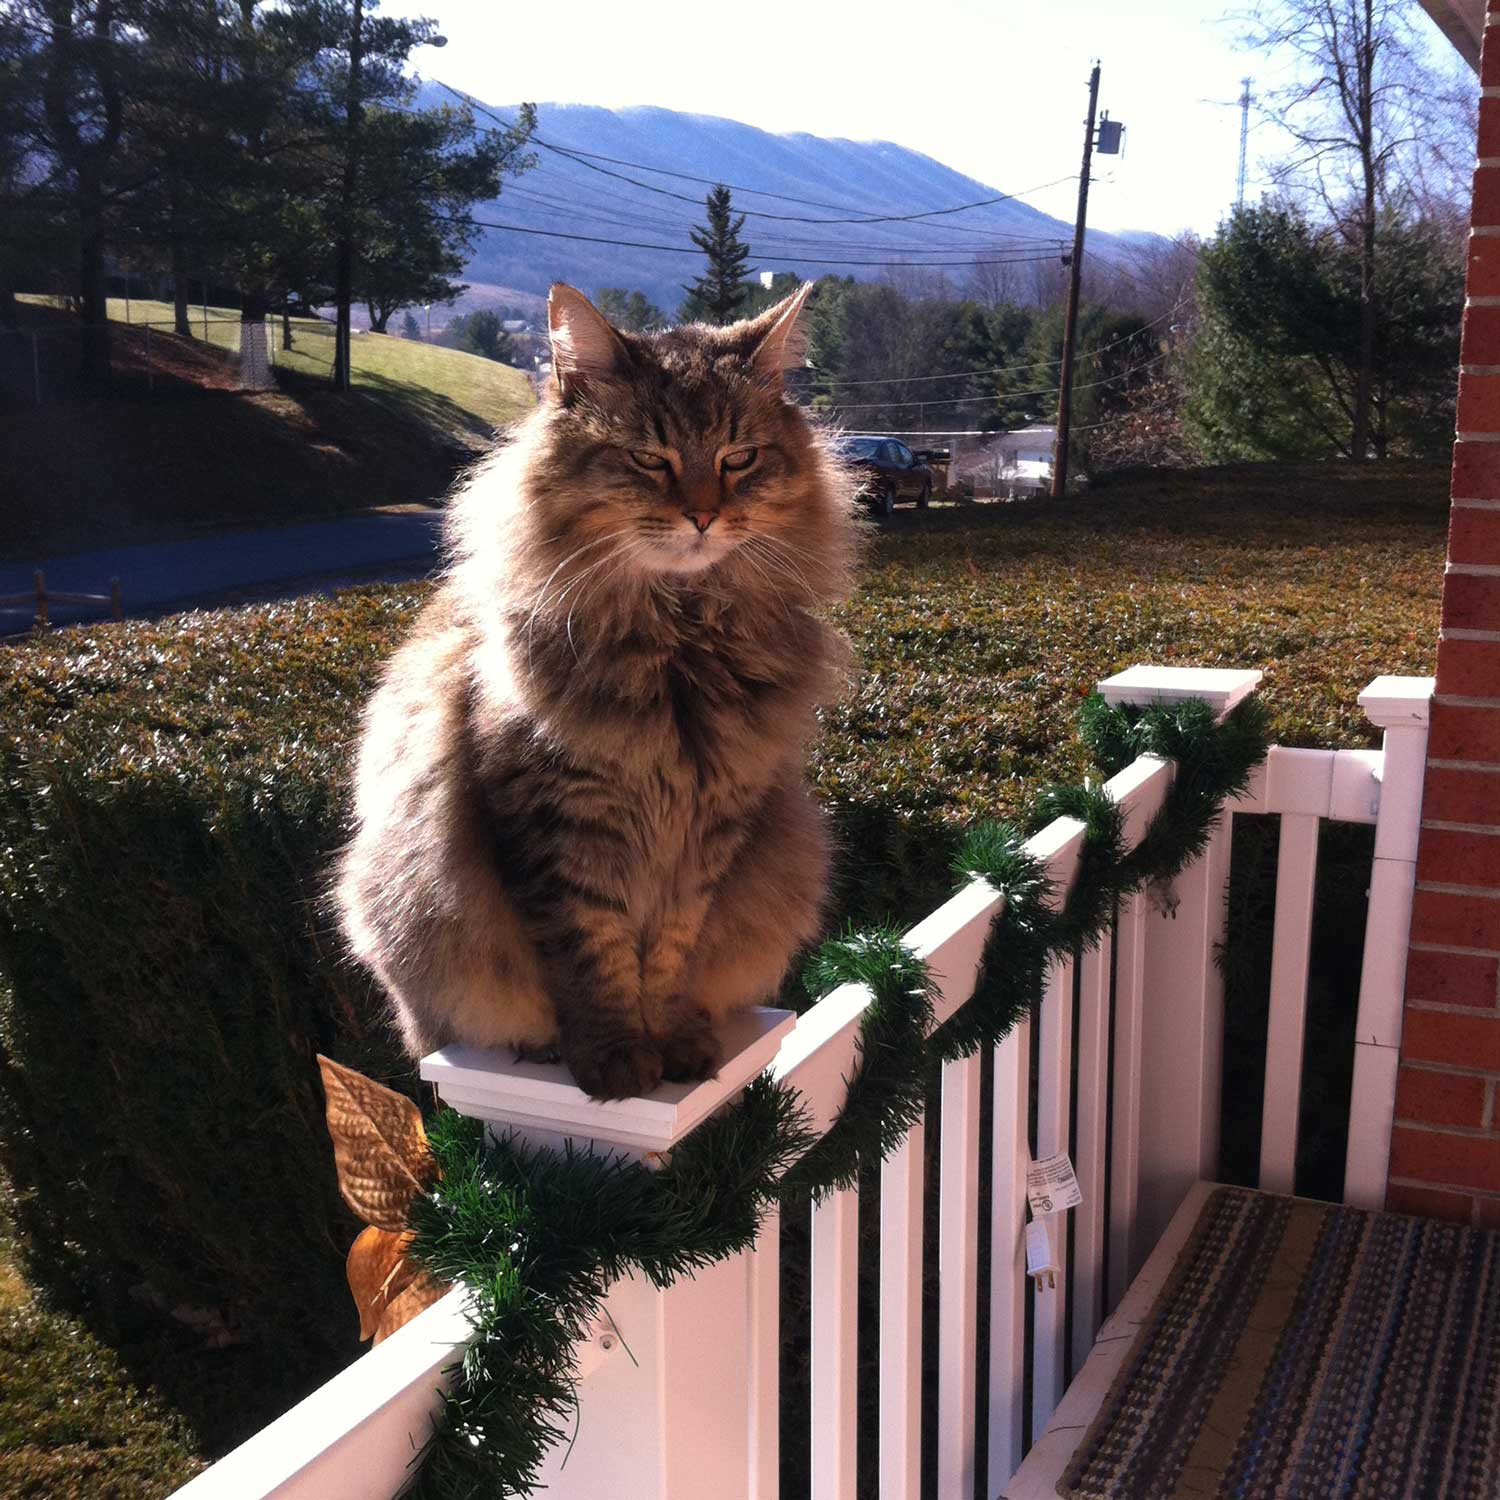 A reader sent a picture of her gorgeous, long-haired, green-eyed cat, Sophie, sitting on the front porch railing with beautiful, long white whiskers! Sophie's the welcoming committee, apparently!